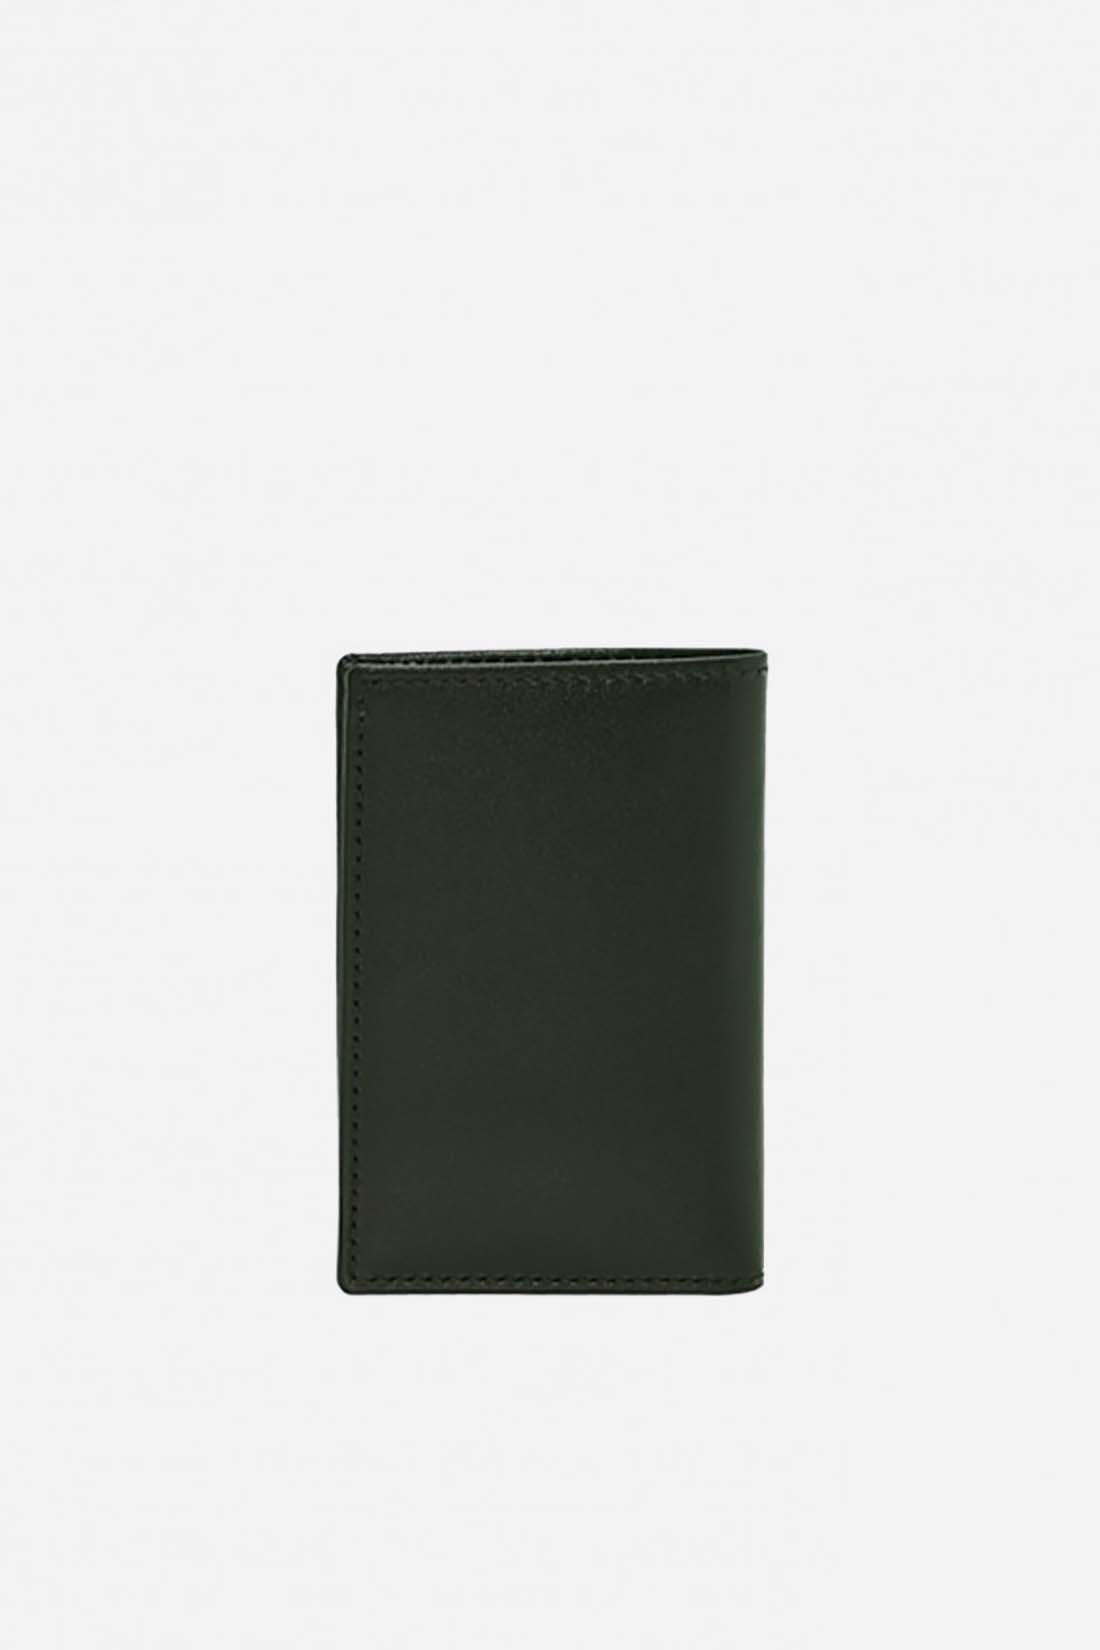 CDG WALLETS / Cdg classic leather sa6400 Bottle green